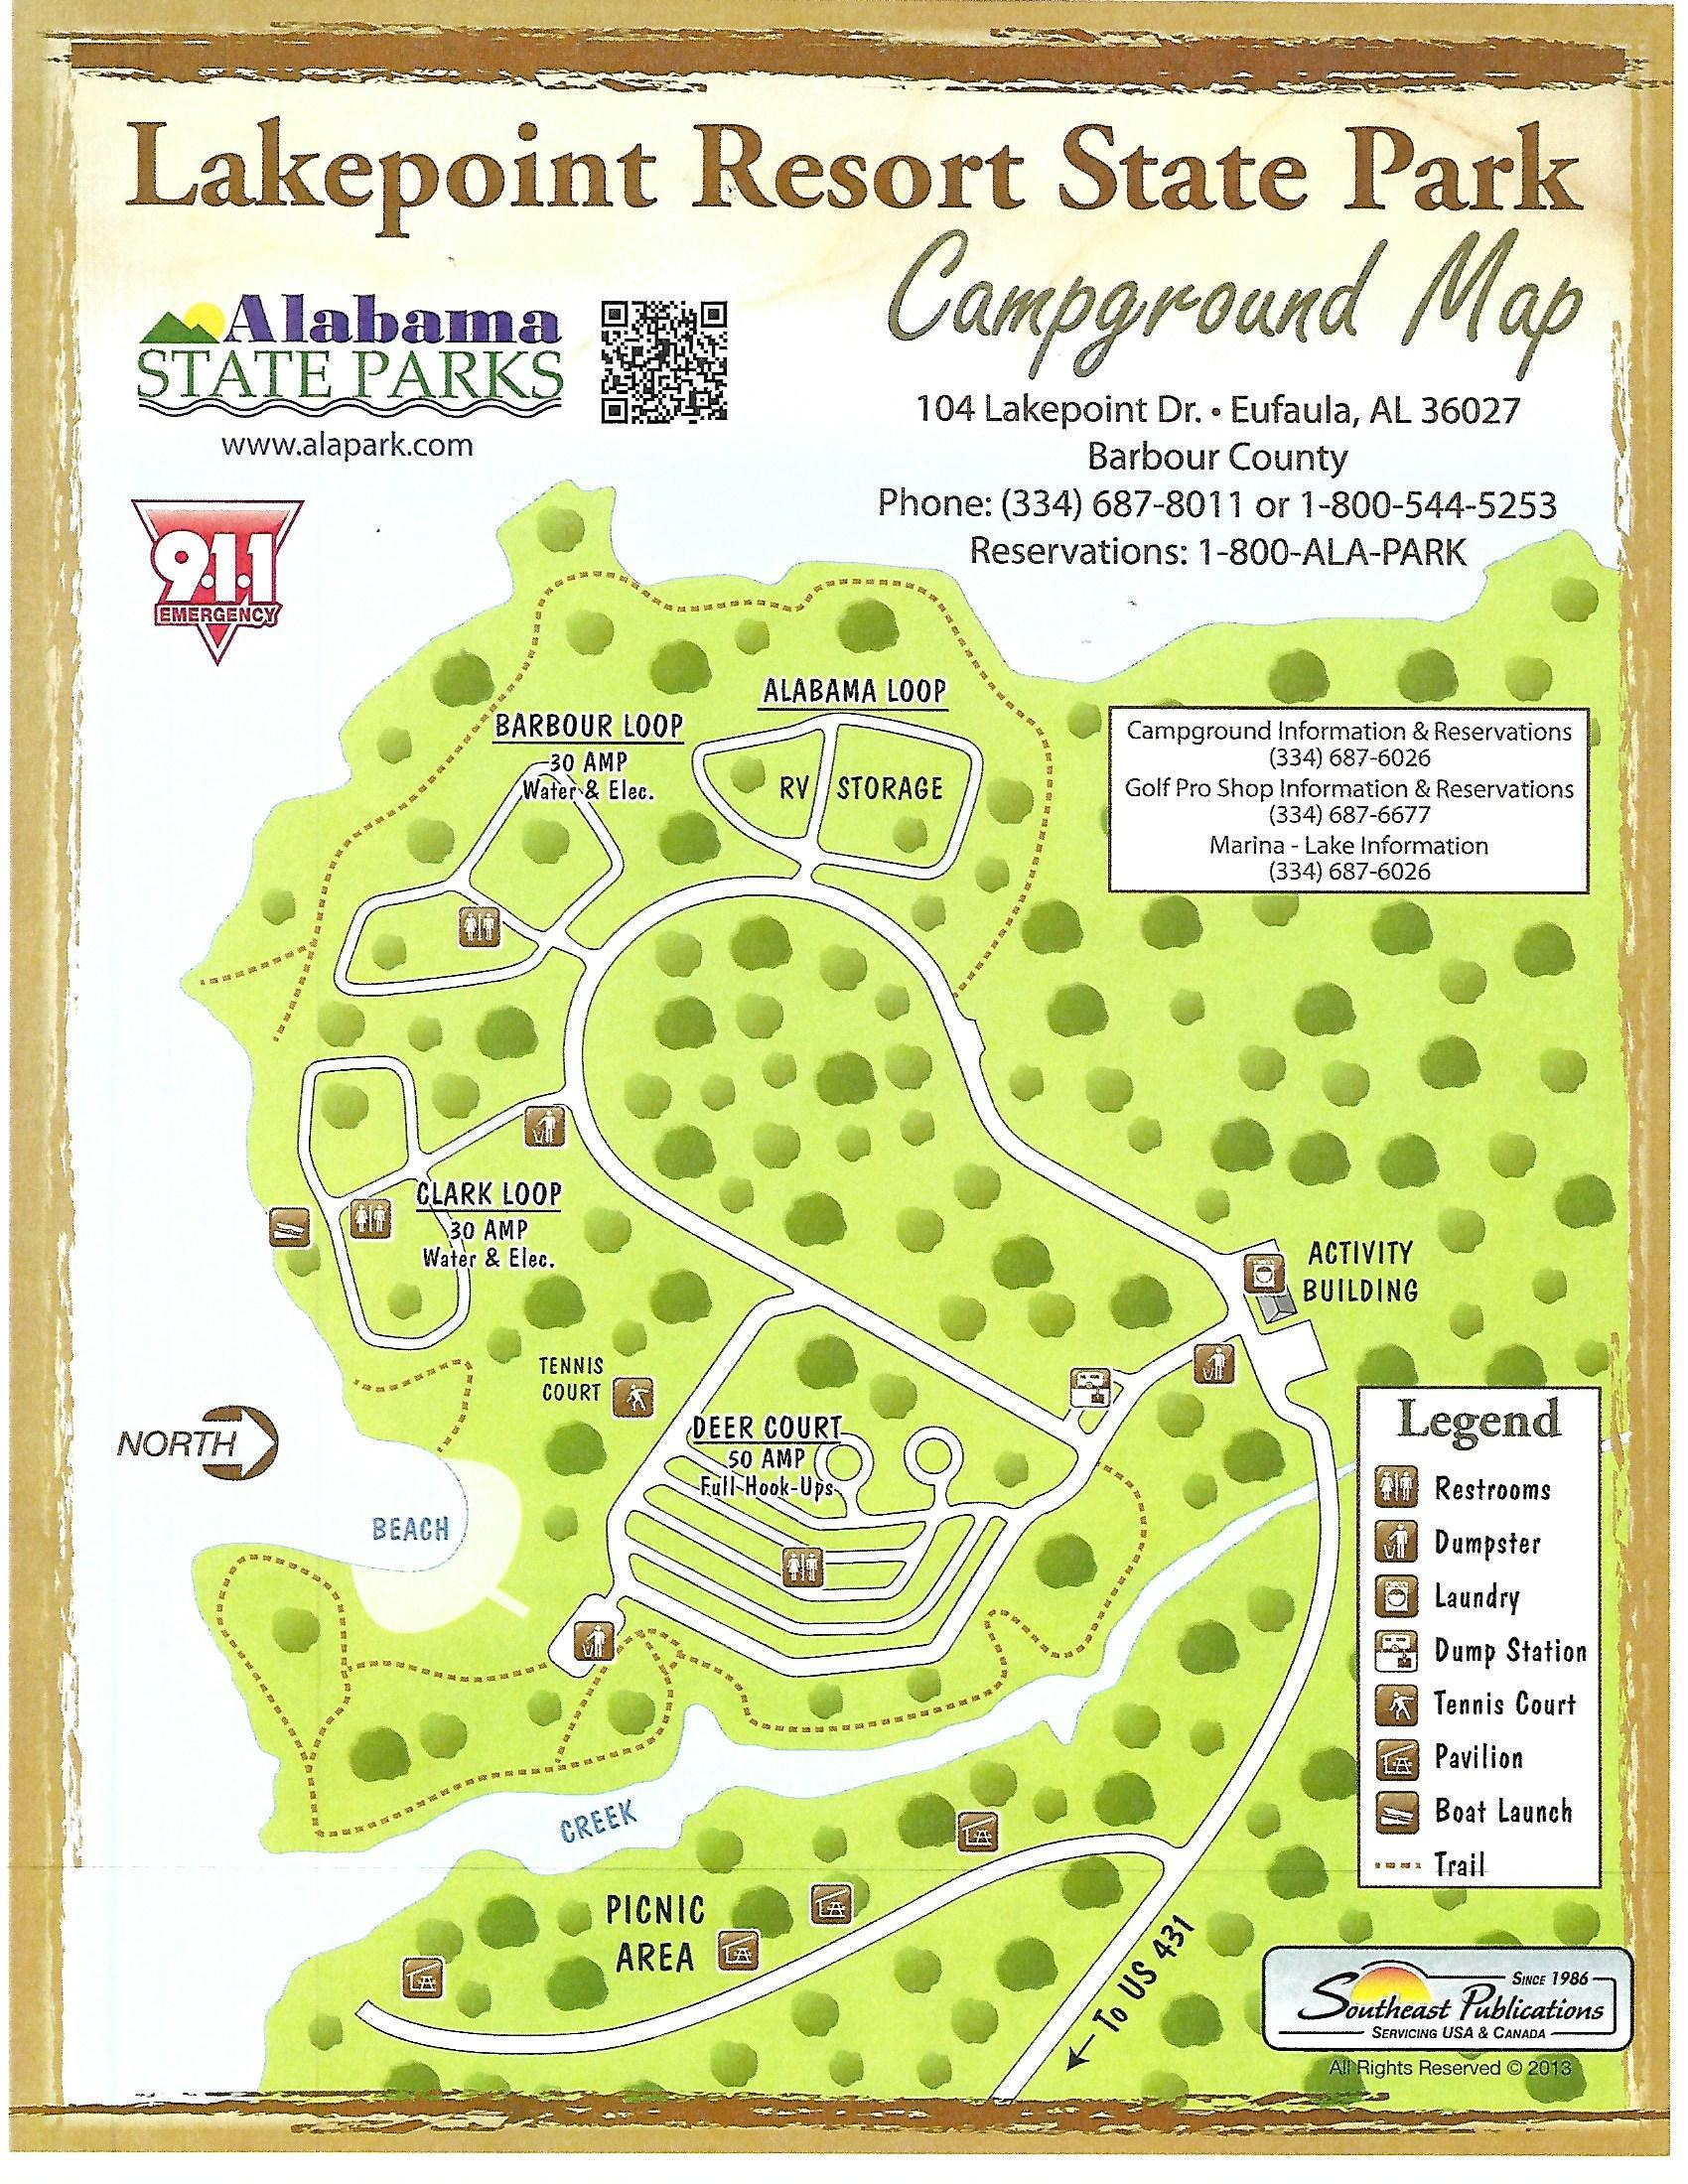 Lakepoint Campground Map